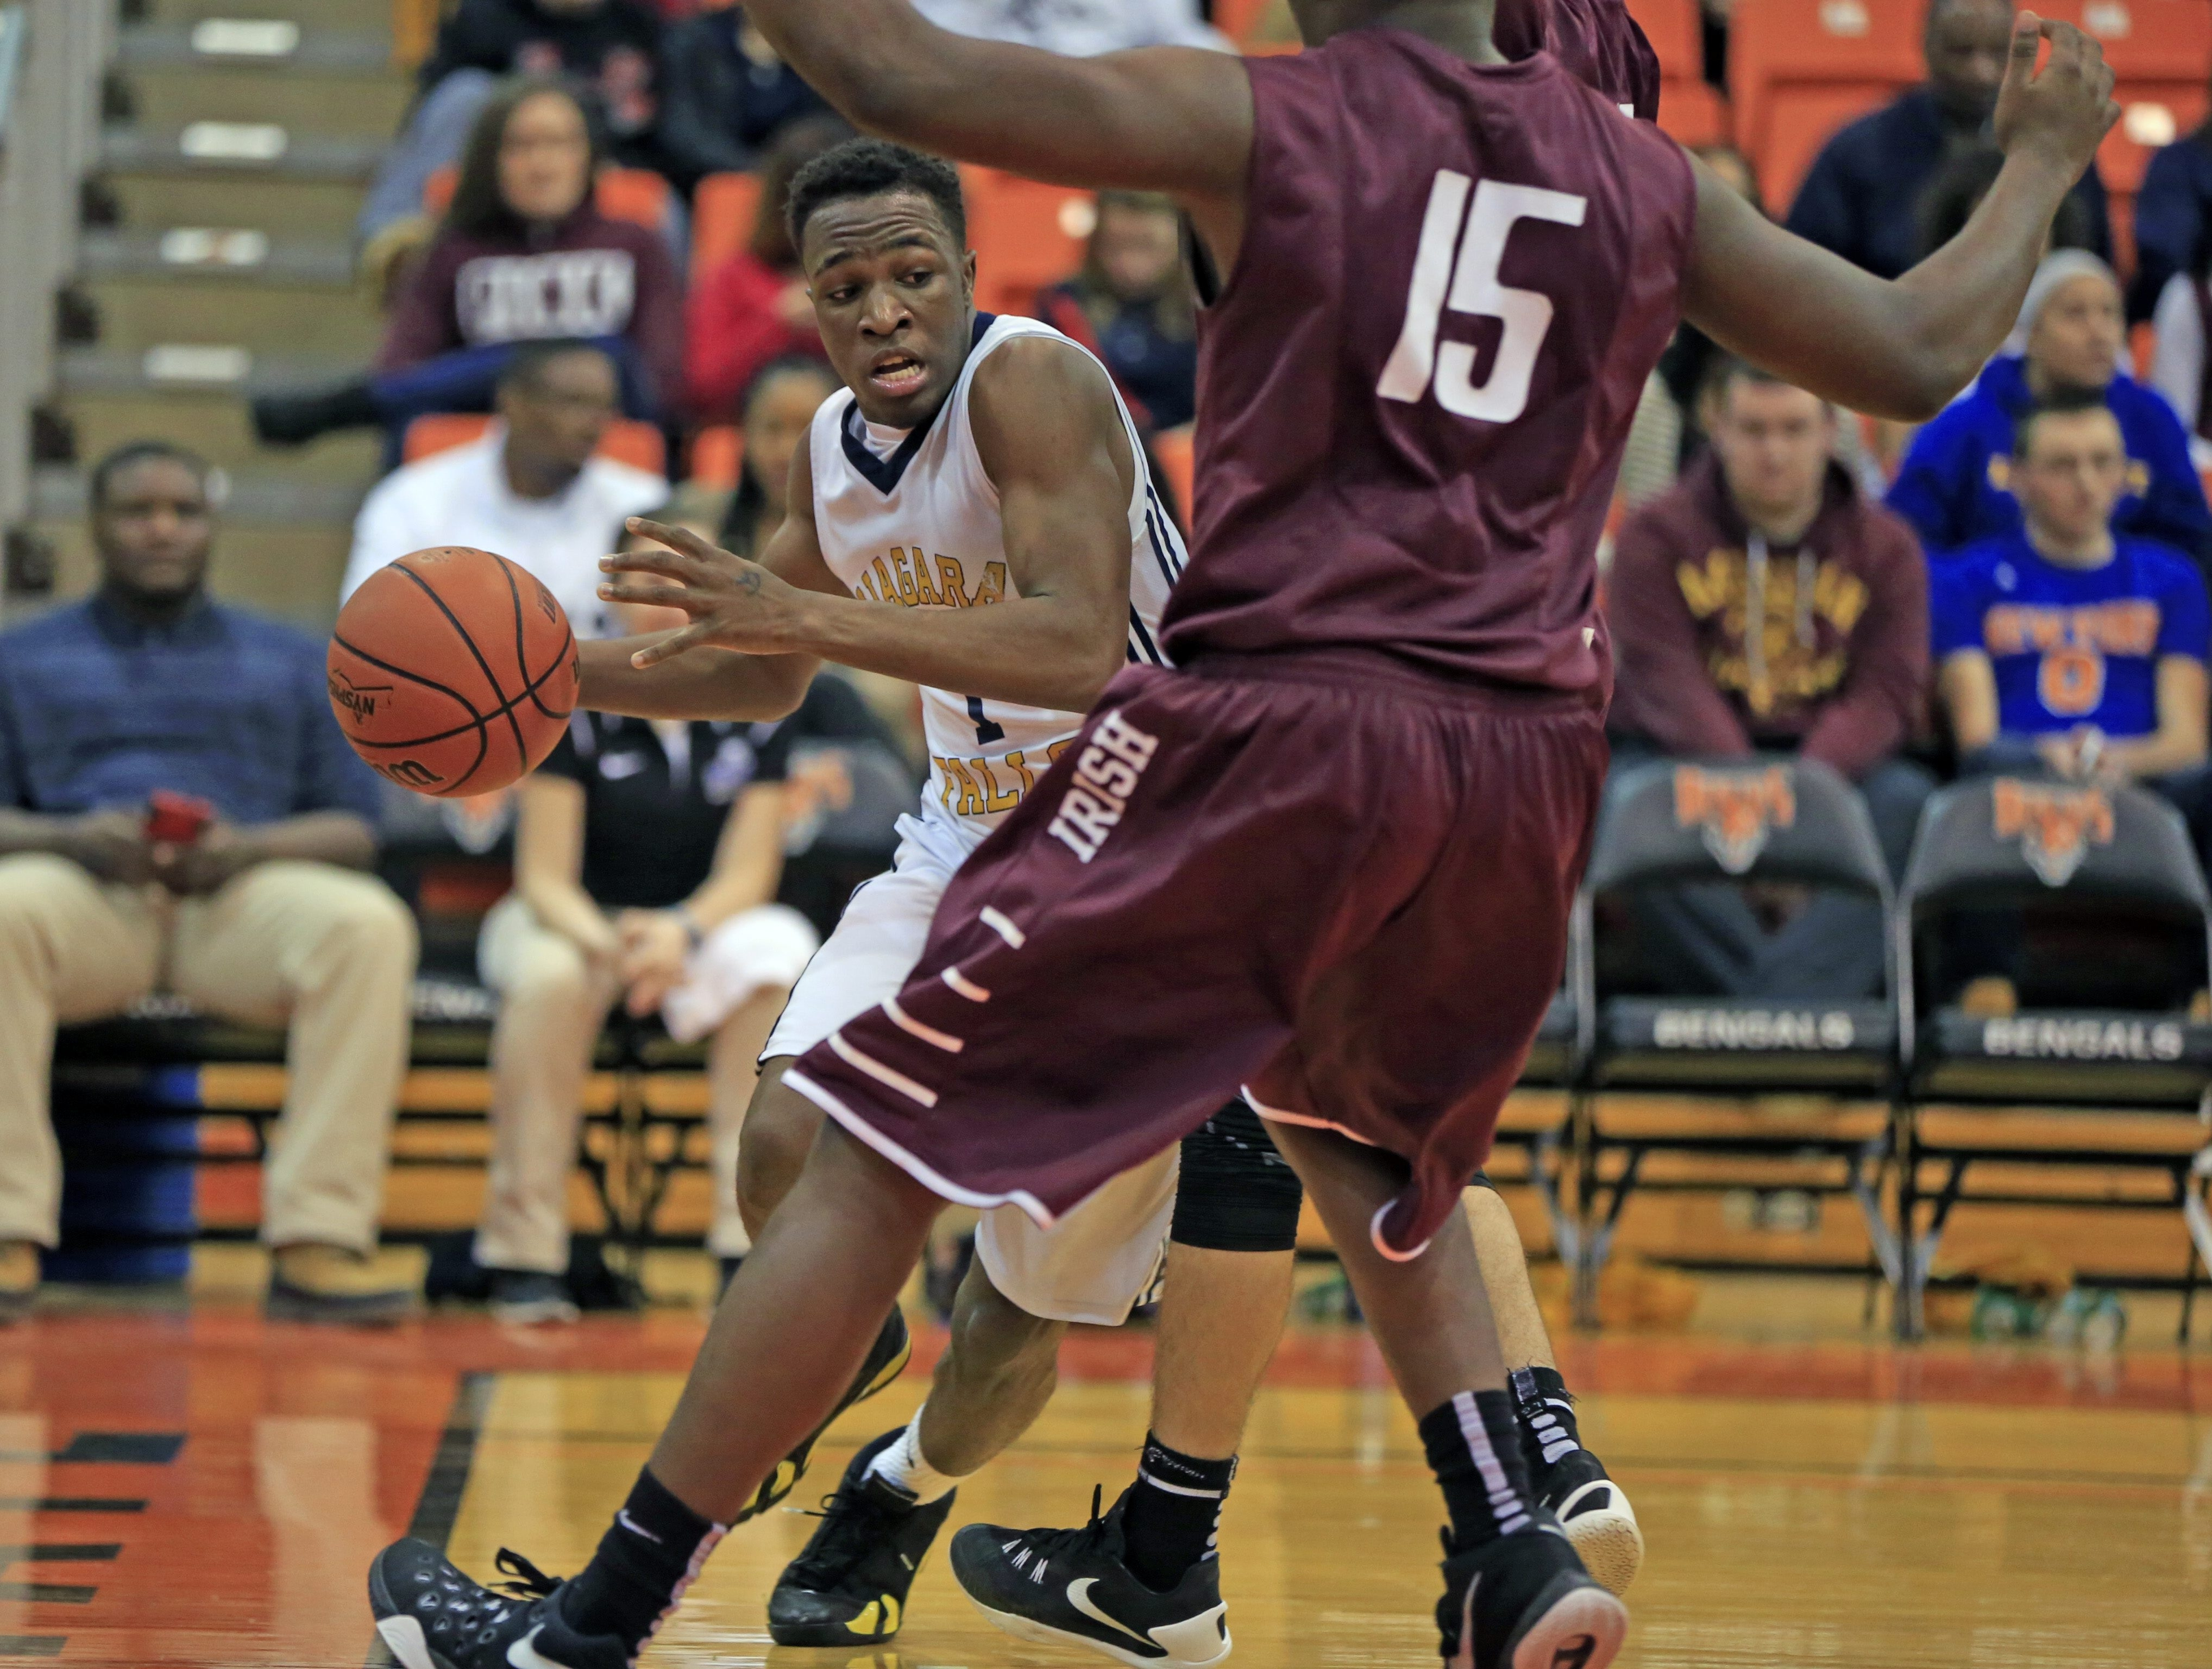 Niagara Falls Breon Harris has nowhere to dribble against Aquinas during the second half of the final game of the day at Buffalo State.